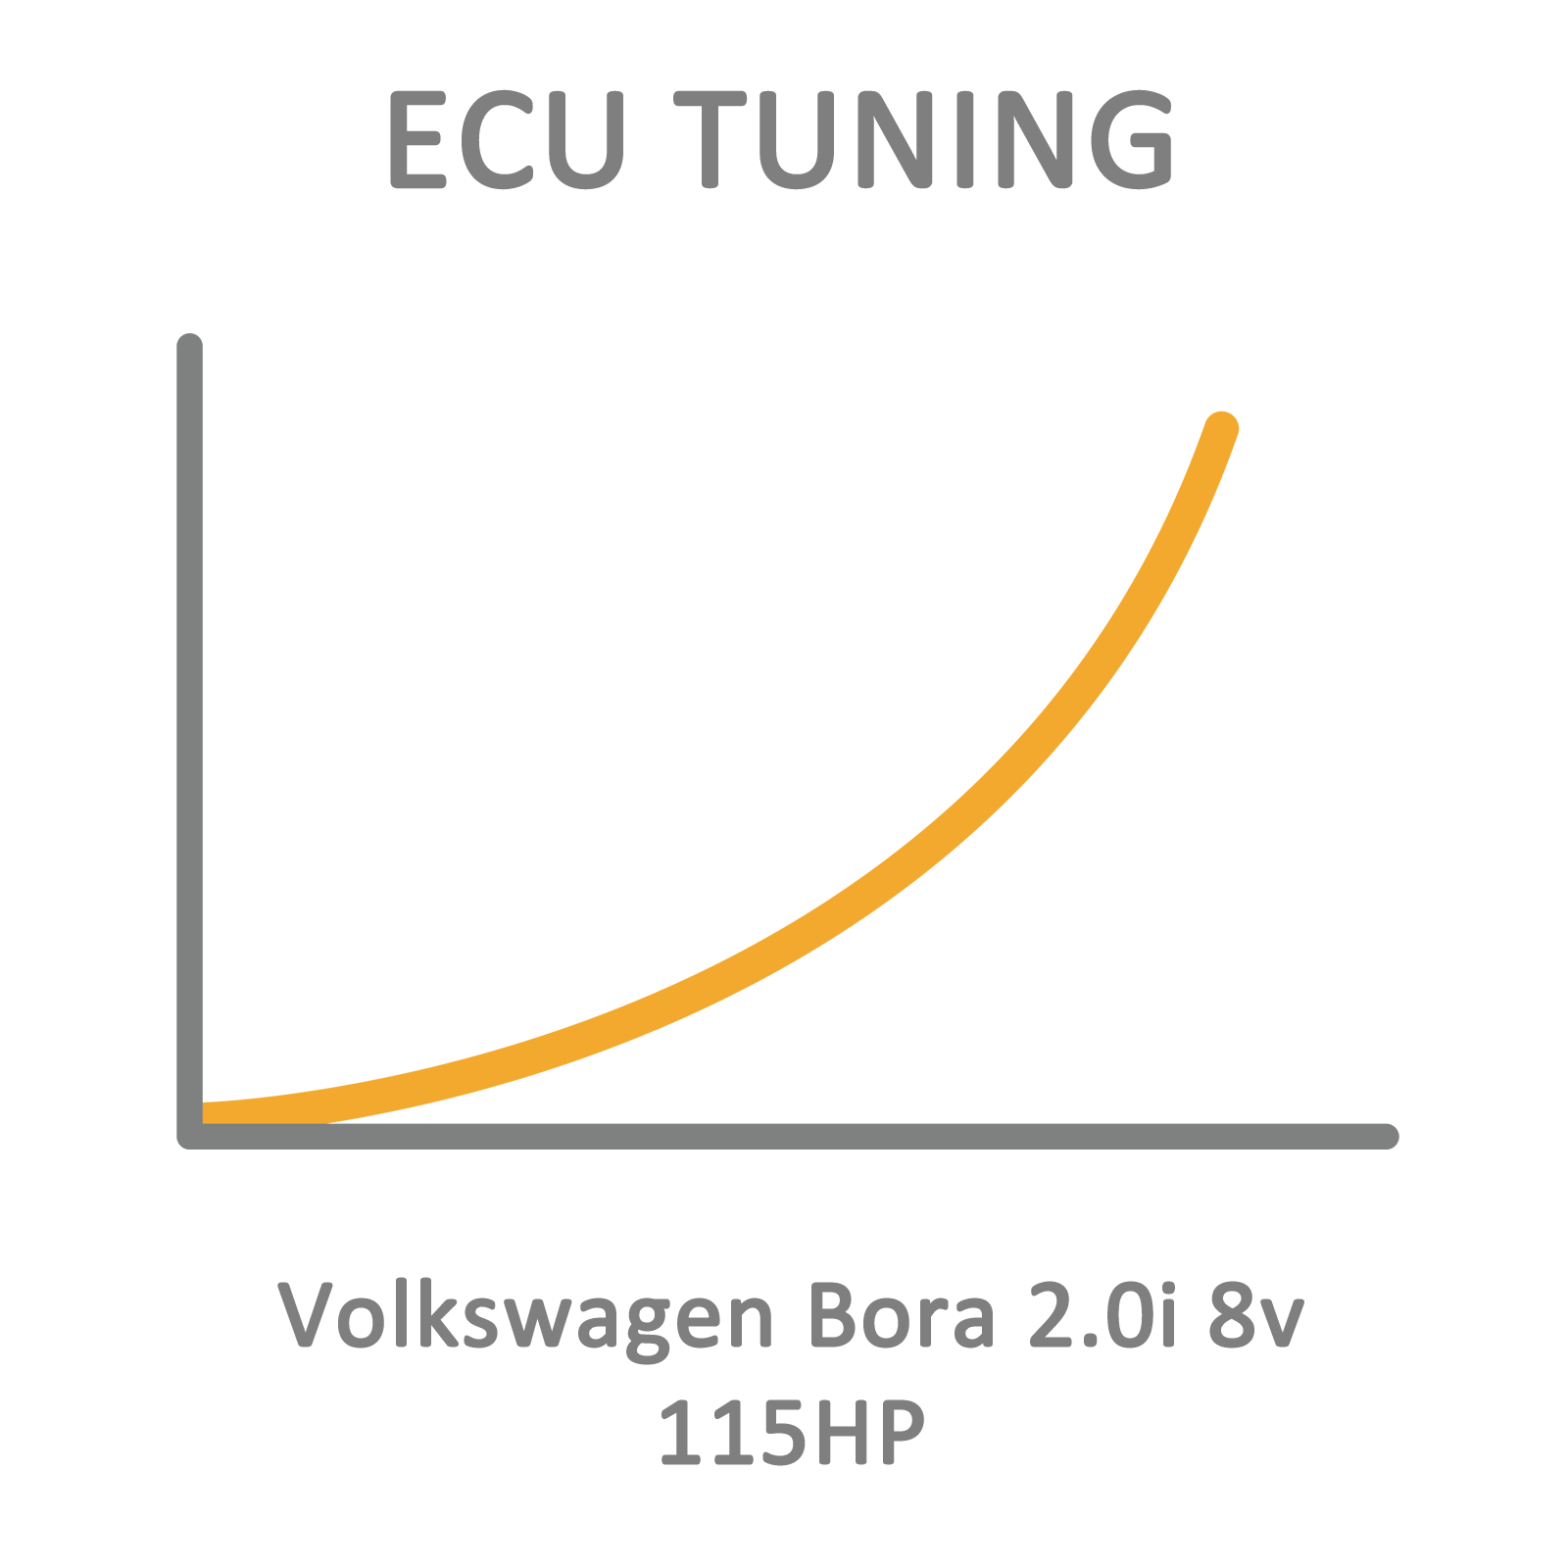 Volkswagen Bora 2.0i 8v 115HP ECU Tuning Remapping Programming